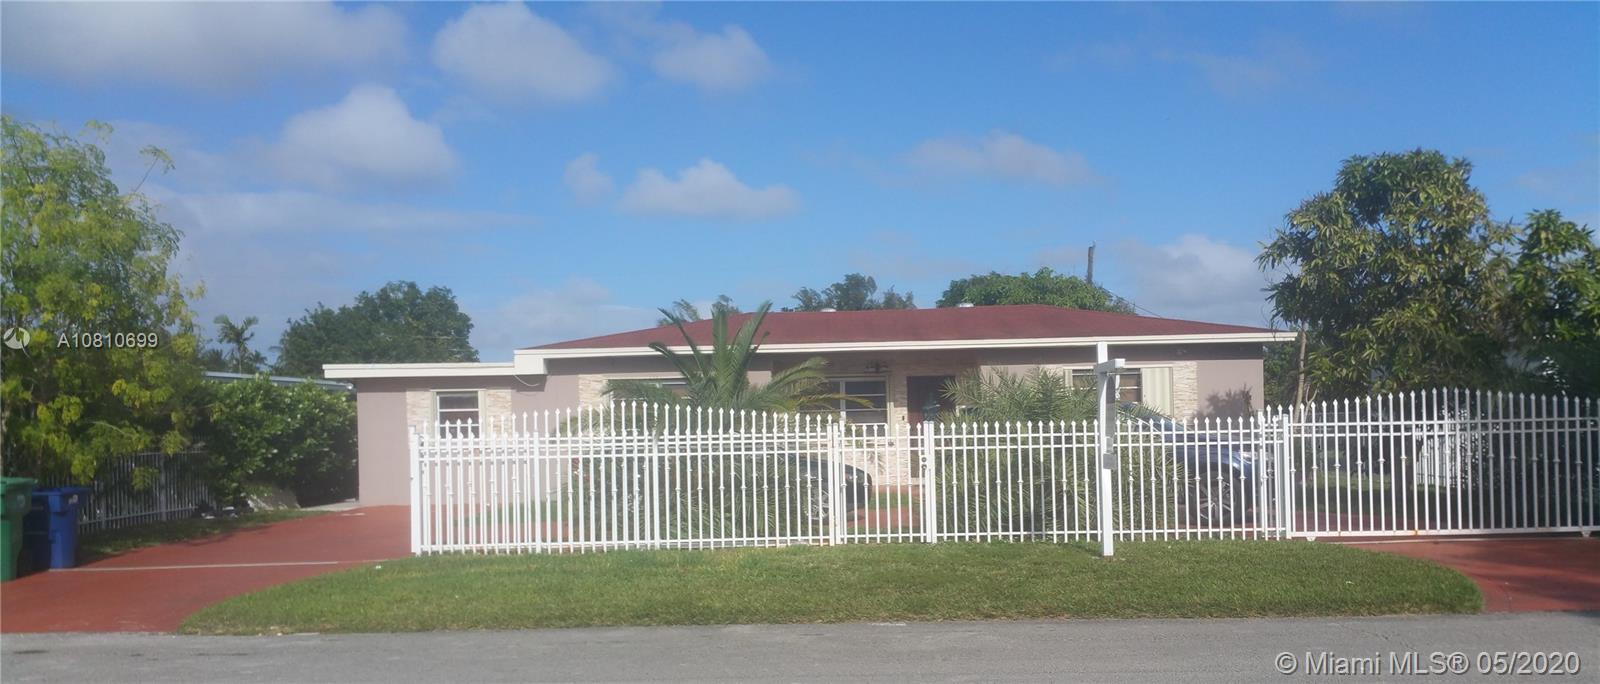 14901  Garden Dr  For Sale A10810699, FL